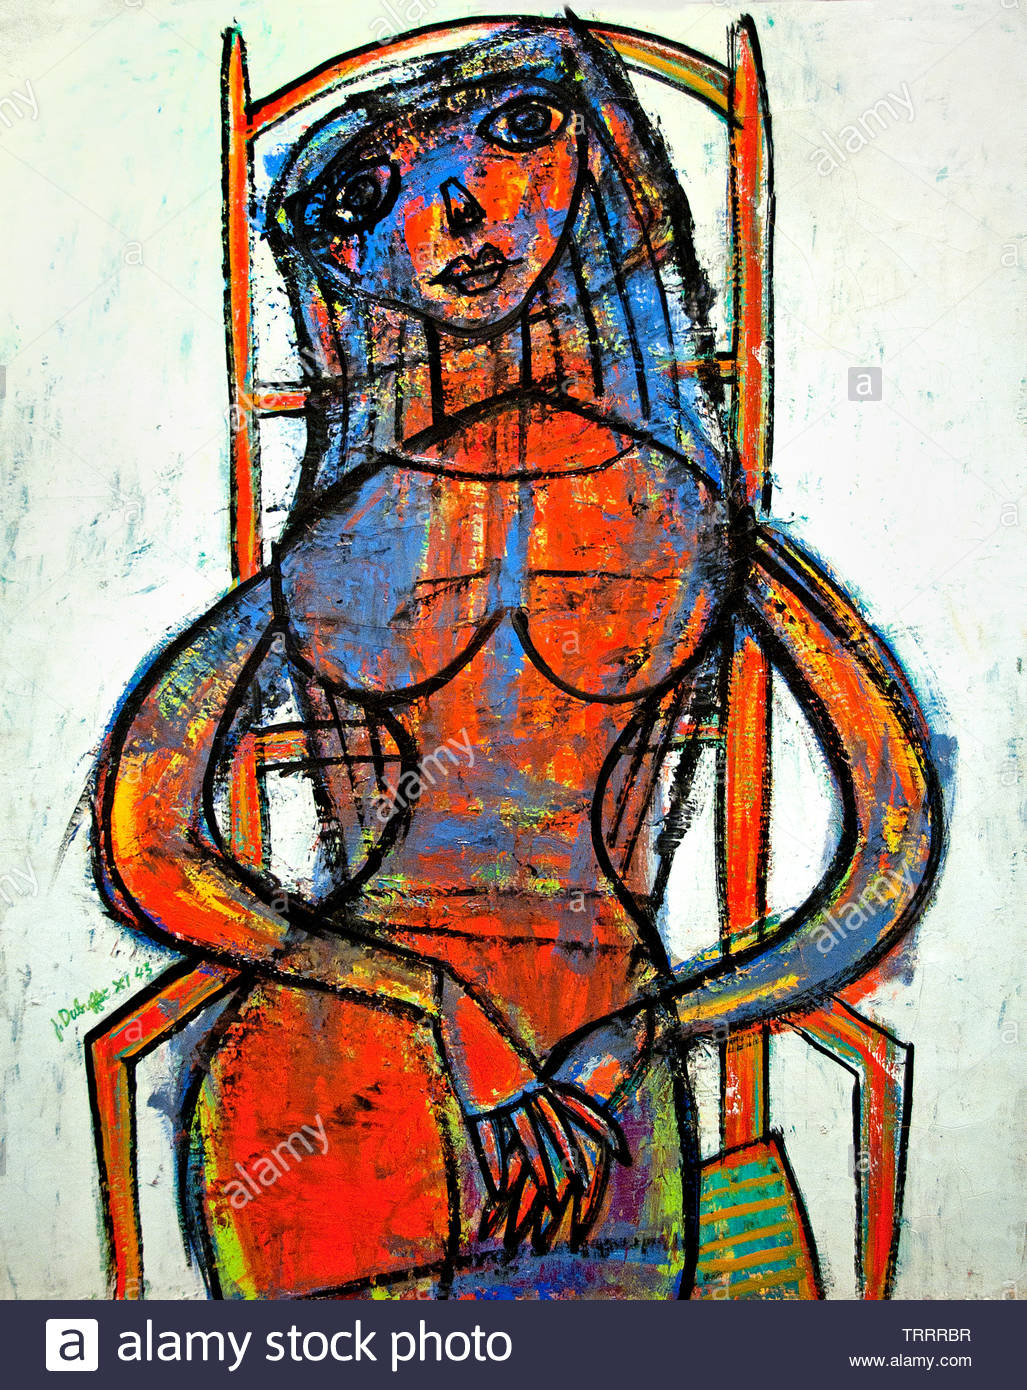 A Widow 1943 by Jean Philippe Arthur Dubuffet born France was a French painter and sculptor - Stock Image